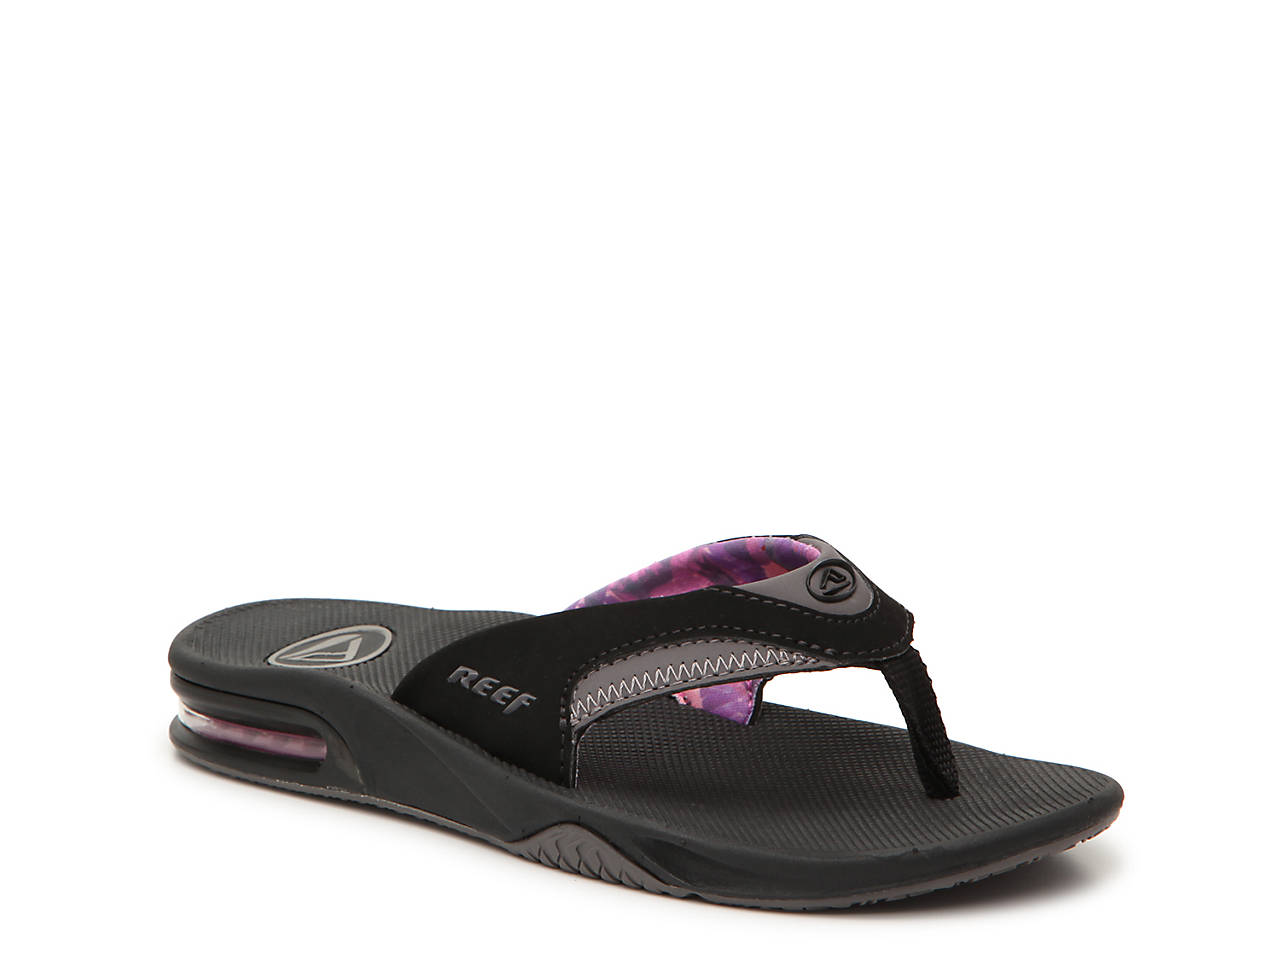 2a8aaca9e2c38 Reef Fanning Bottle Opener Flip Flop Women's Shoes | DSW